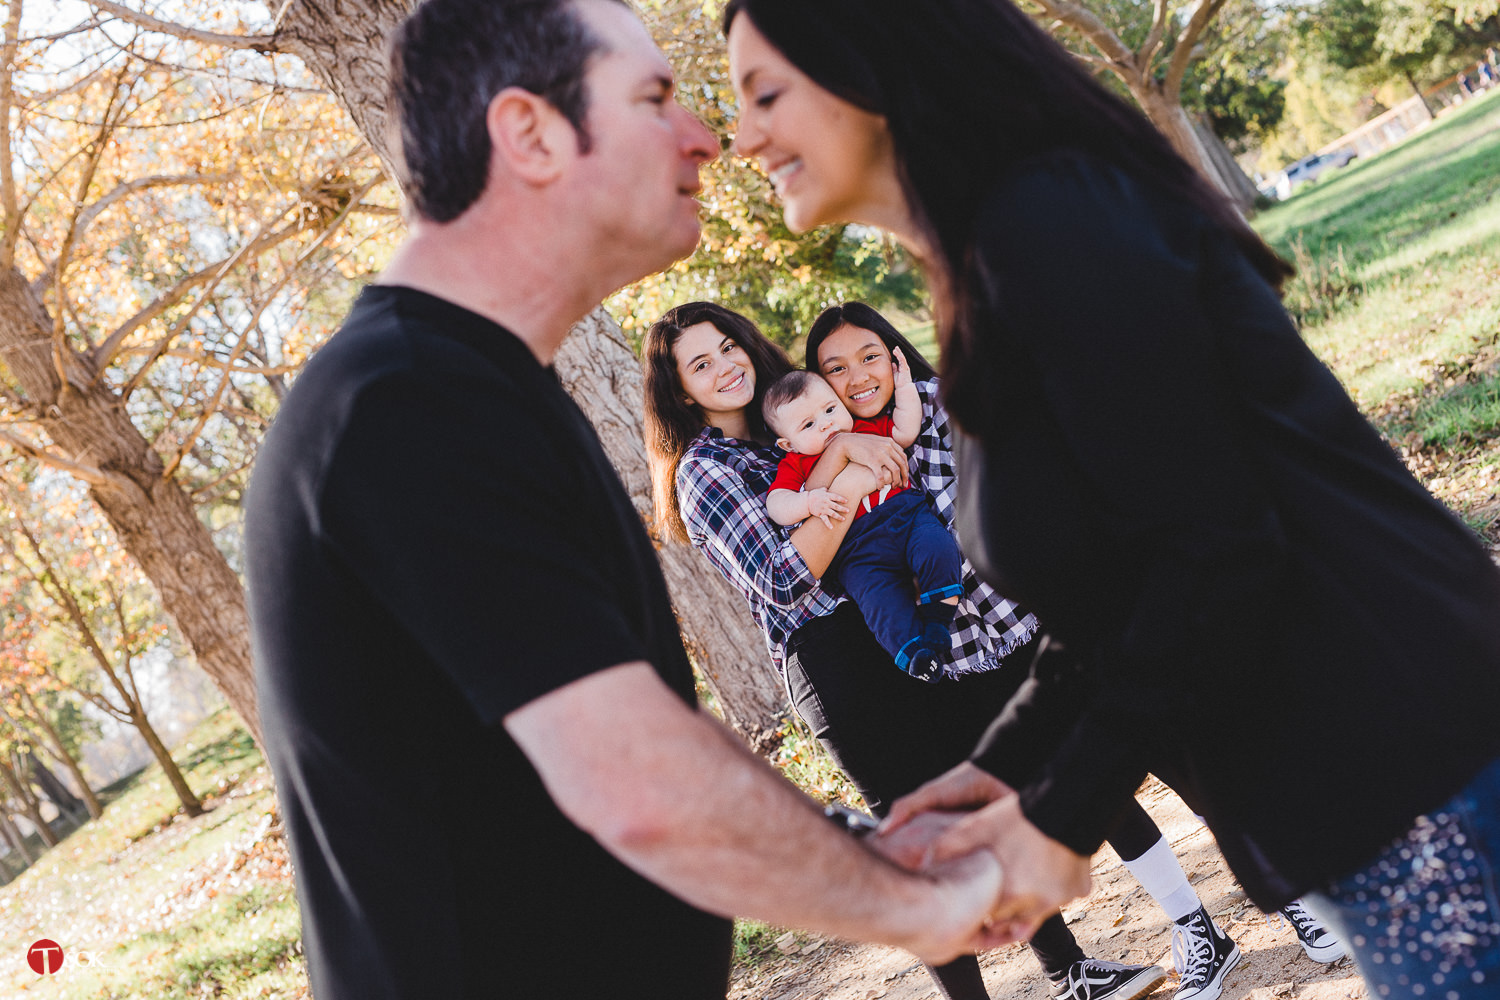 lara-family-photoshoot-baylands-park-53.jpg